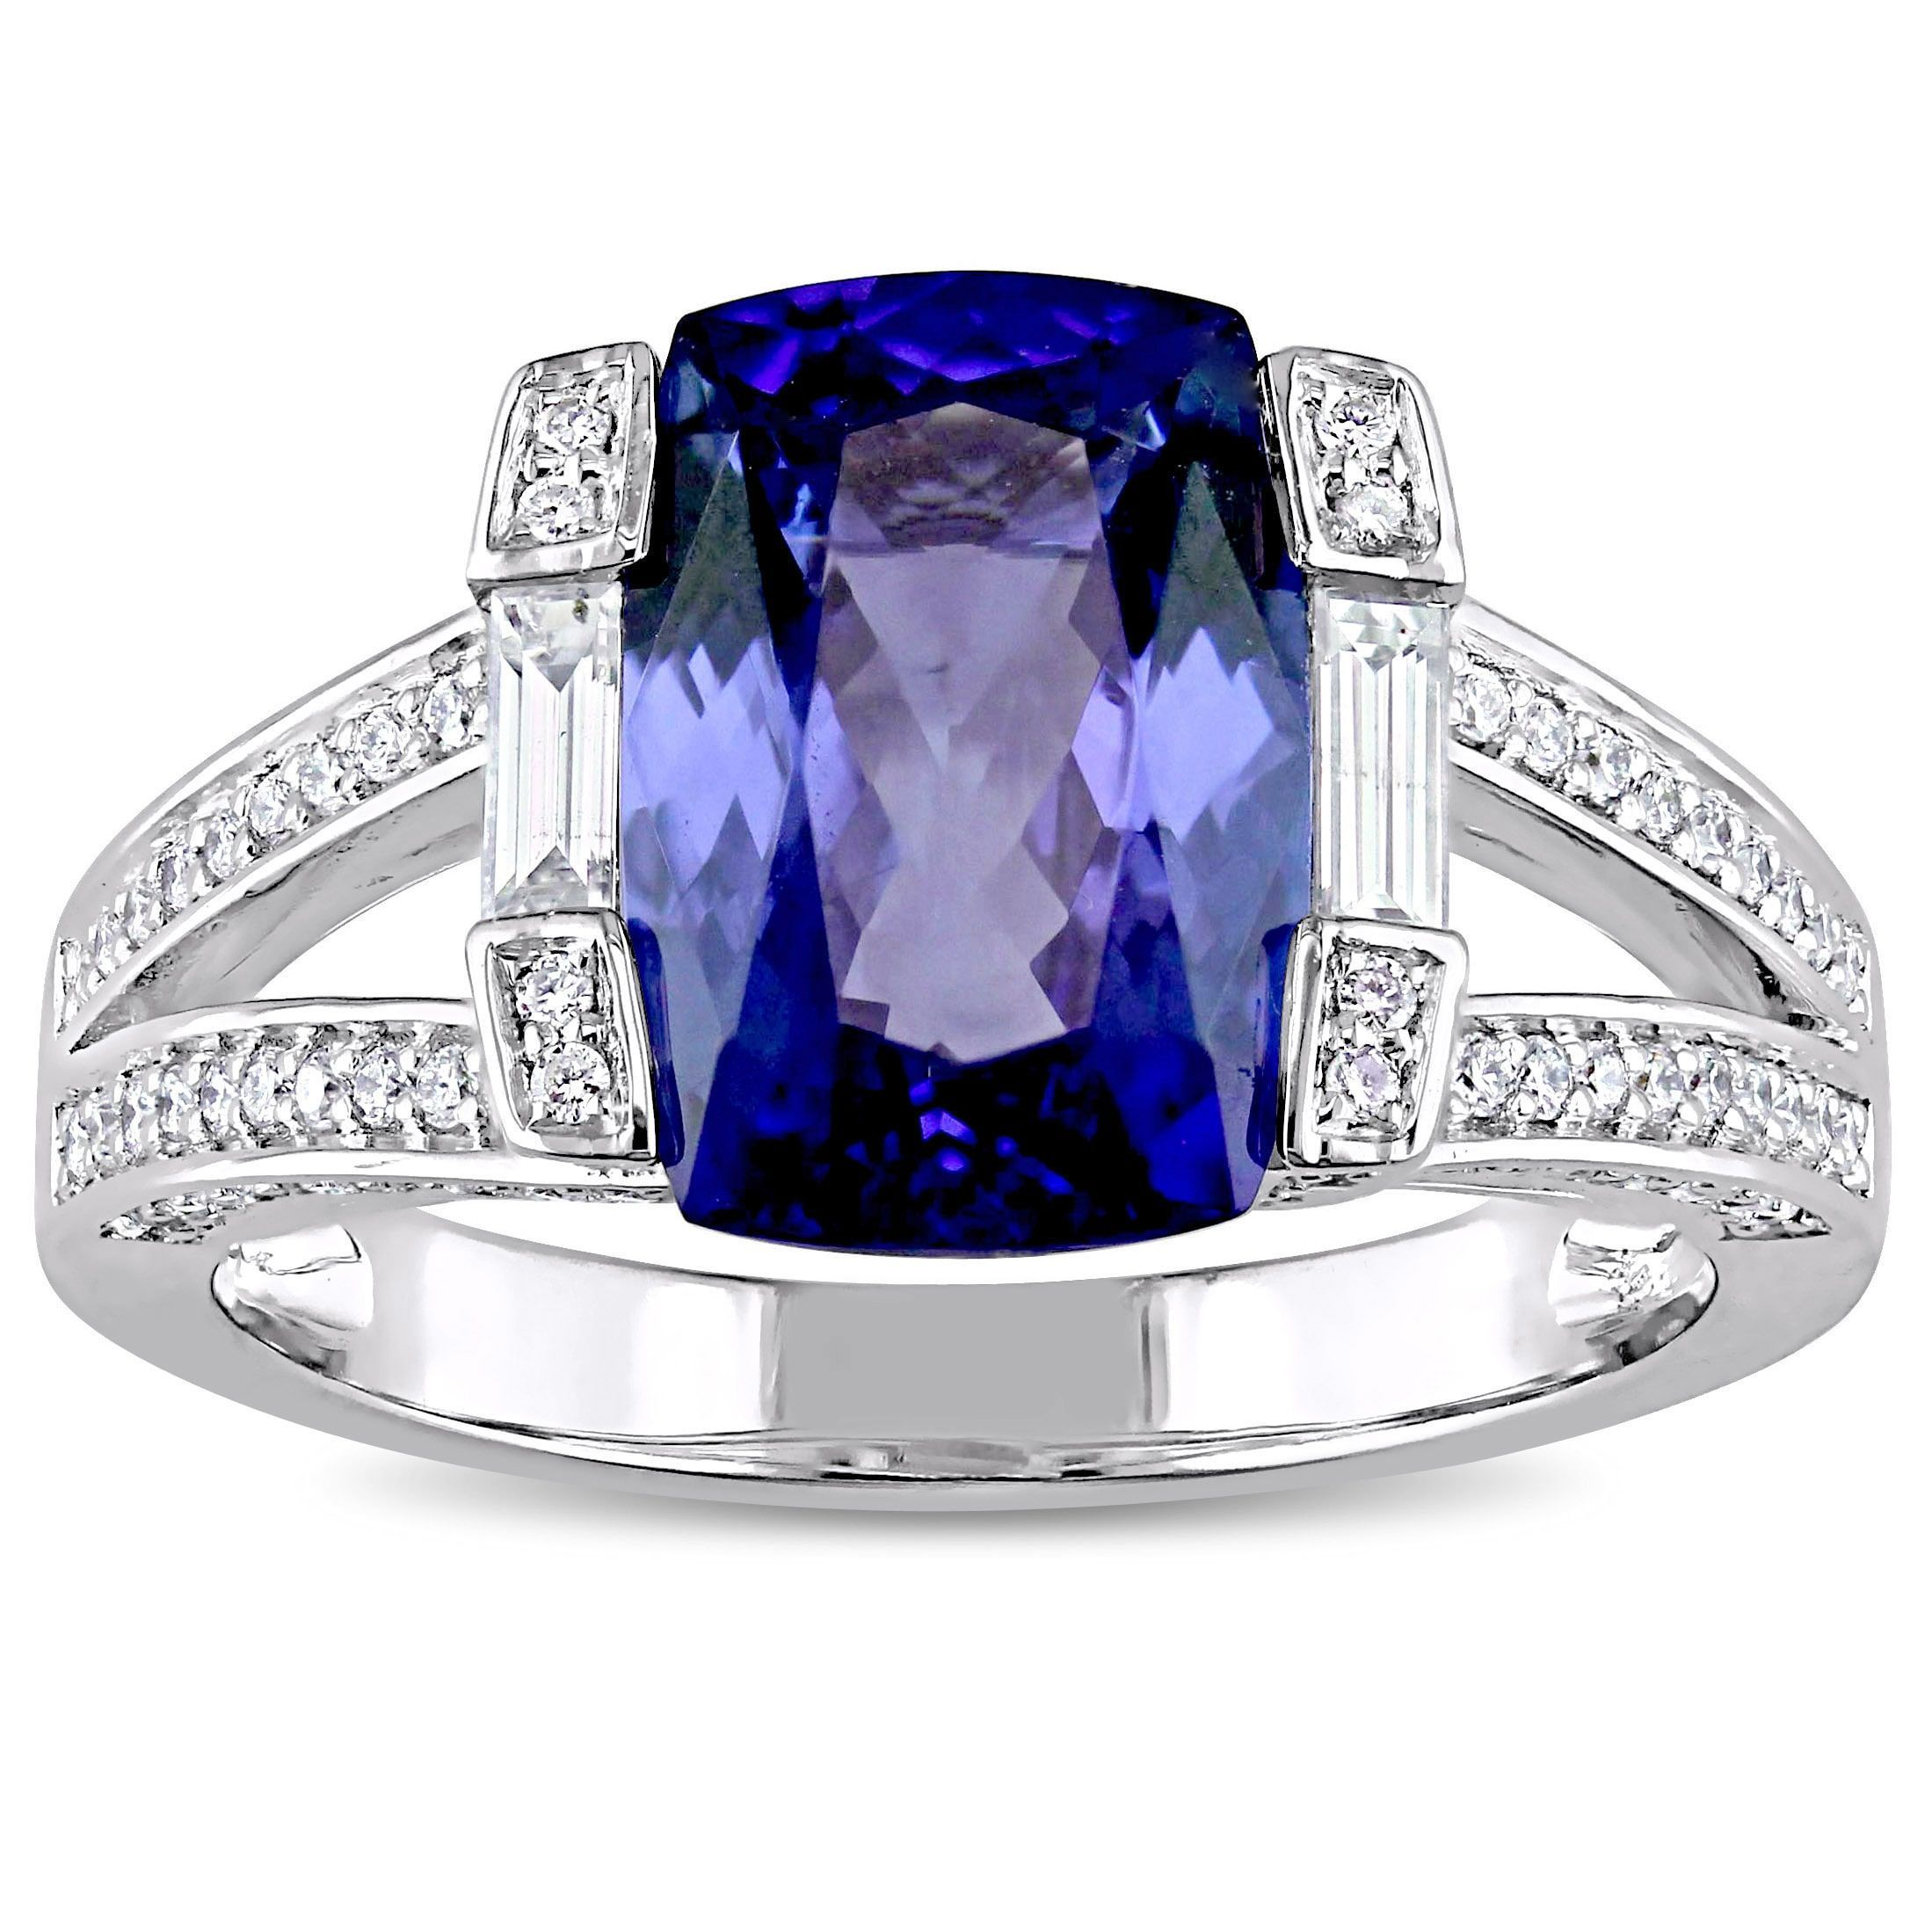 henry three johnstone of princess ring stone d img diamond tanzanite cut products jewellers